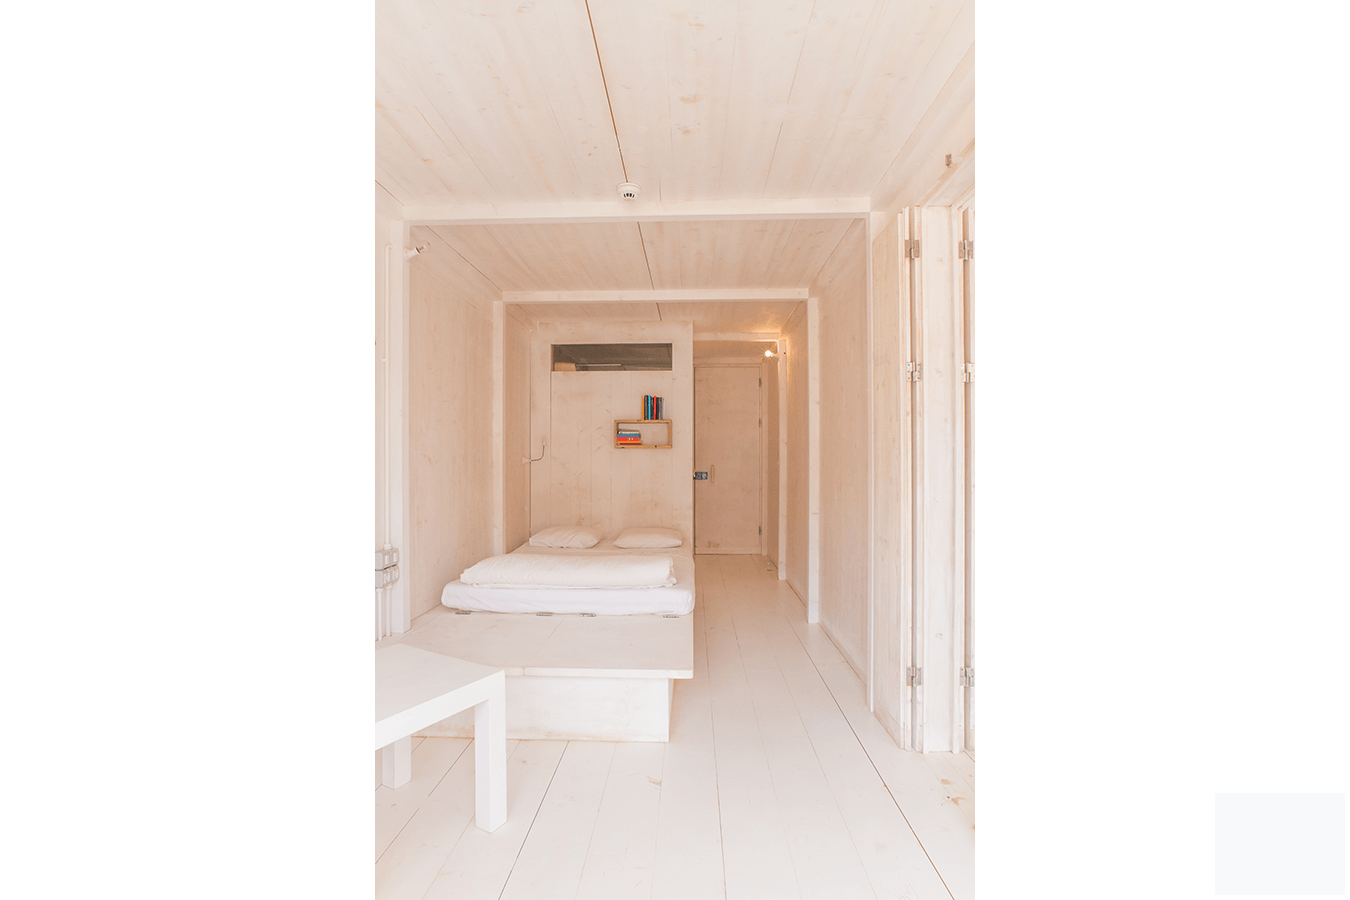 acquiles_eco_hotel_04_Ramos_Castellano_Architects_Room_3.png